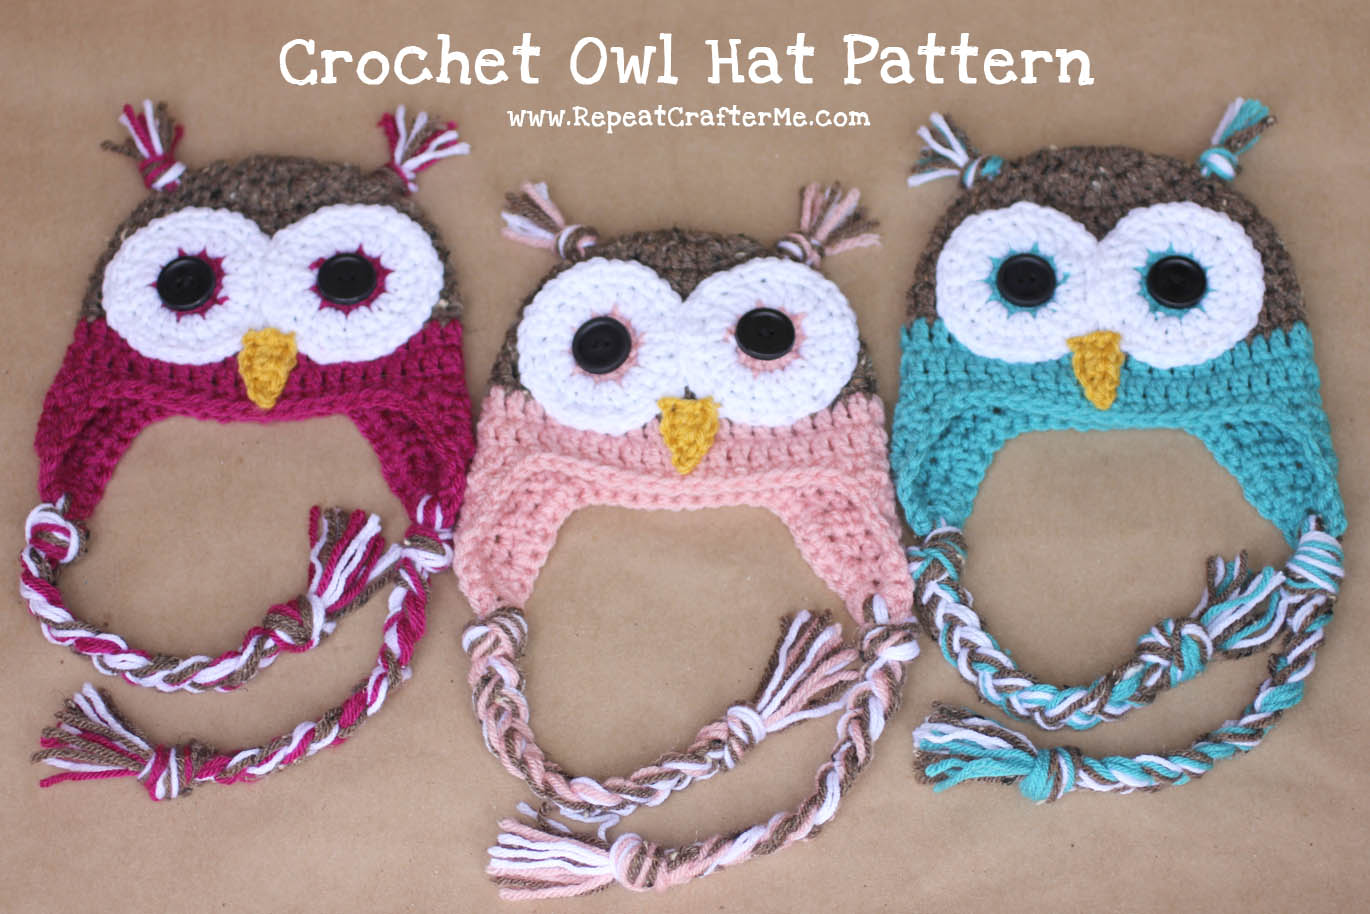 I ve been fine-tuning this pattern for a couple weeks and am excited to  share with you my own crochet owl hat pattern! It is newborn size with  earflaps and ... 5684d5526bb